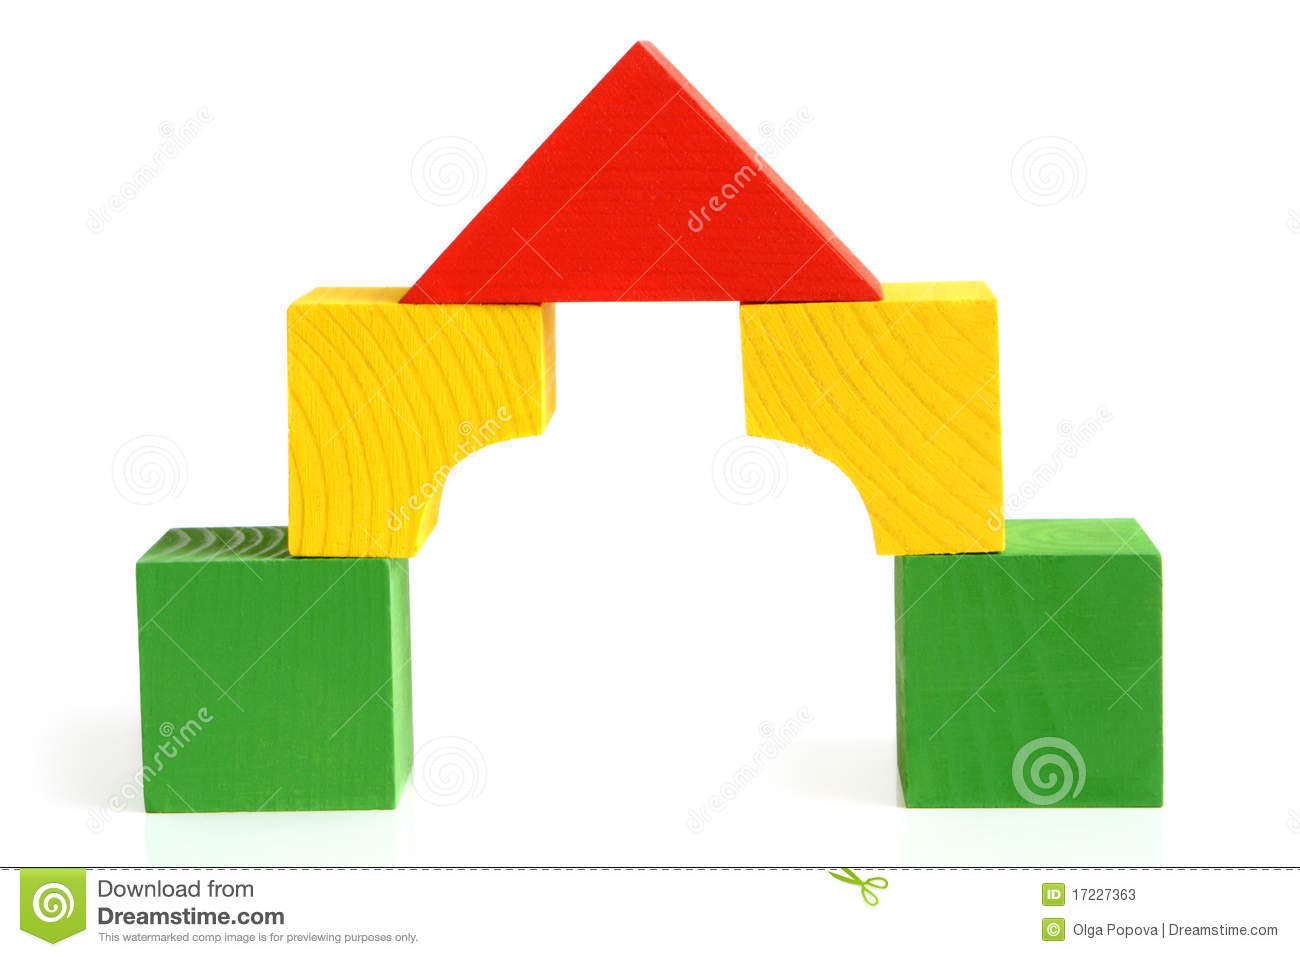 Building a house with wooden blocks clipart picture transparent library Building a house with wooden blocks clipart - ClipartFest picture transparent library